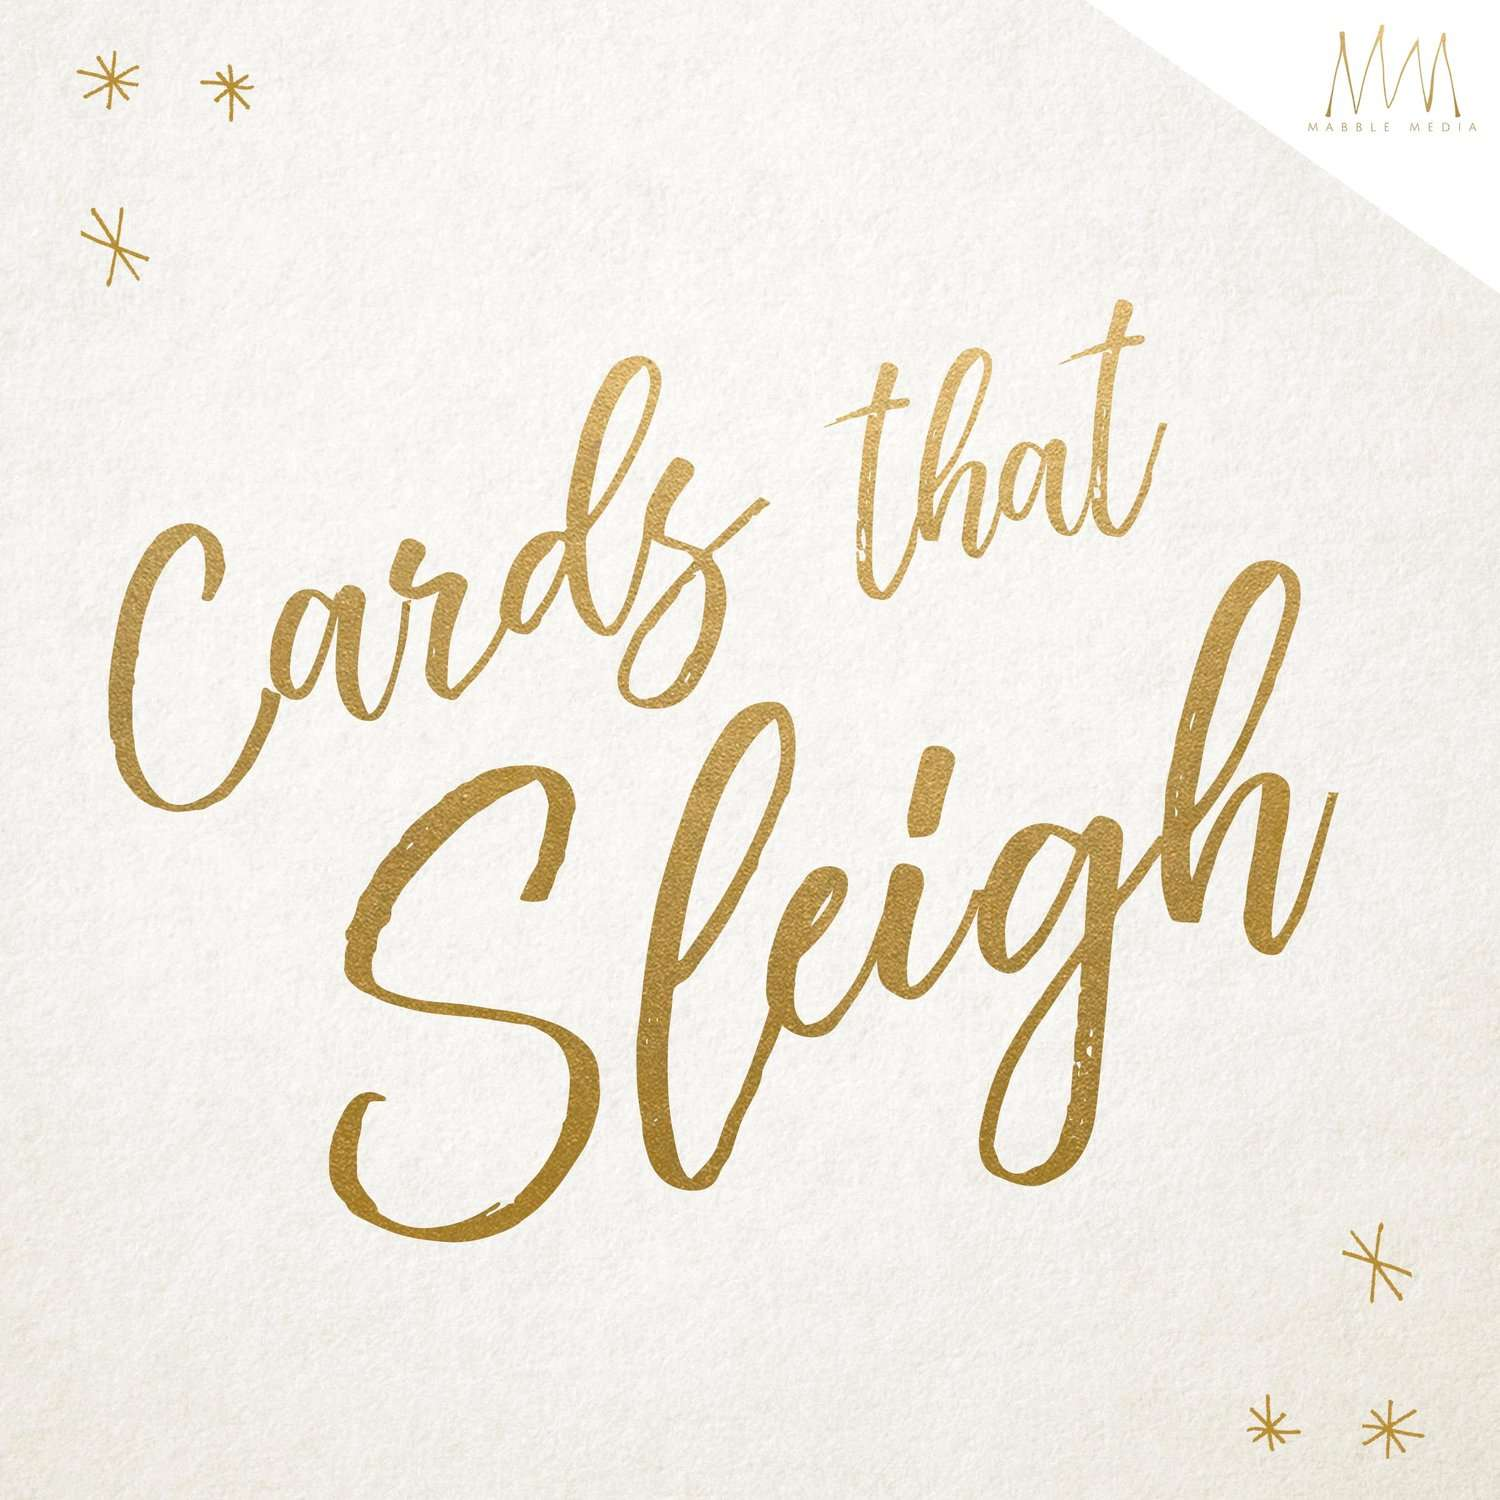 Mabble Media - Creative Agency | Card Mockup, perfect for Holiday and Christmas Cards!